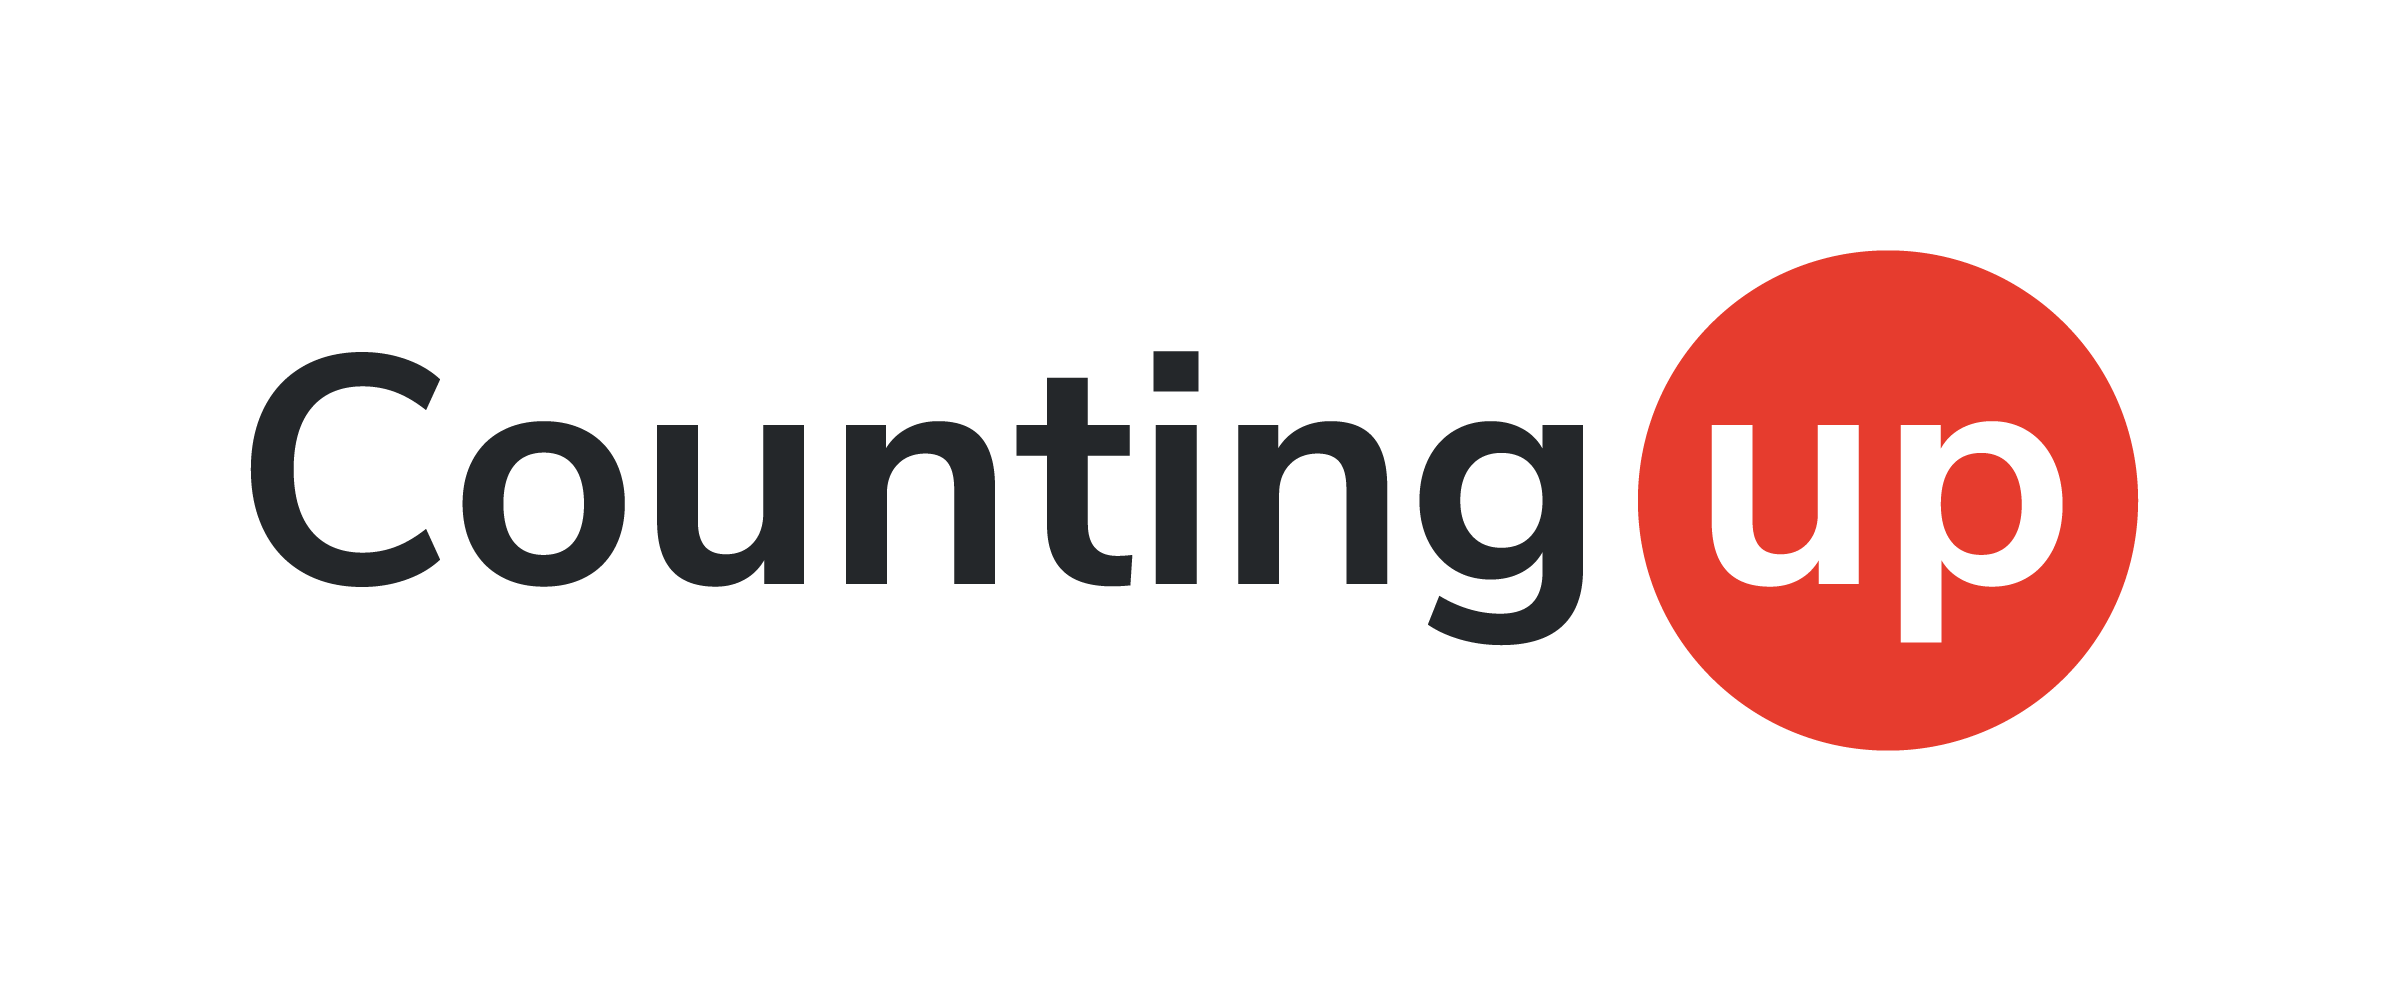 Countingup announces journals to advance the true single accounting ledger